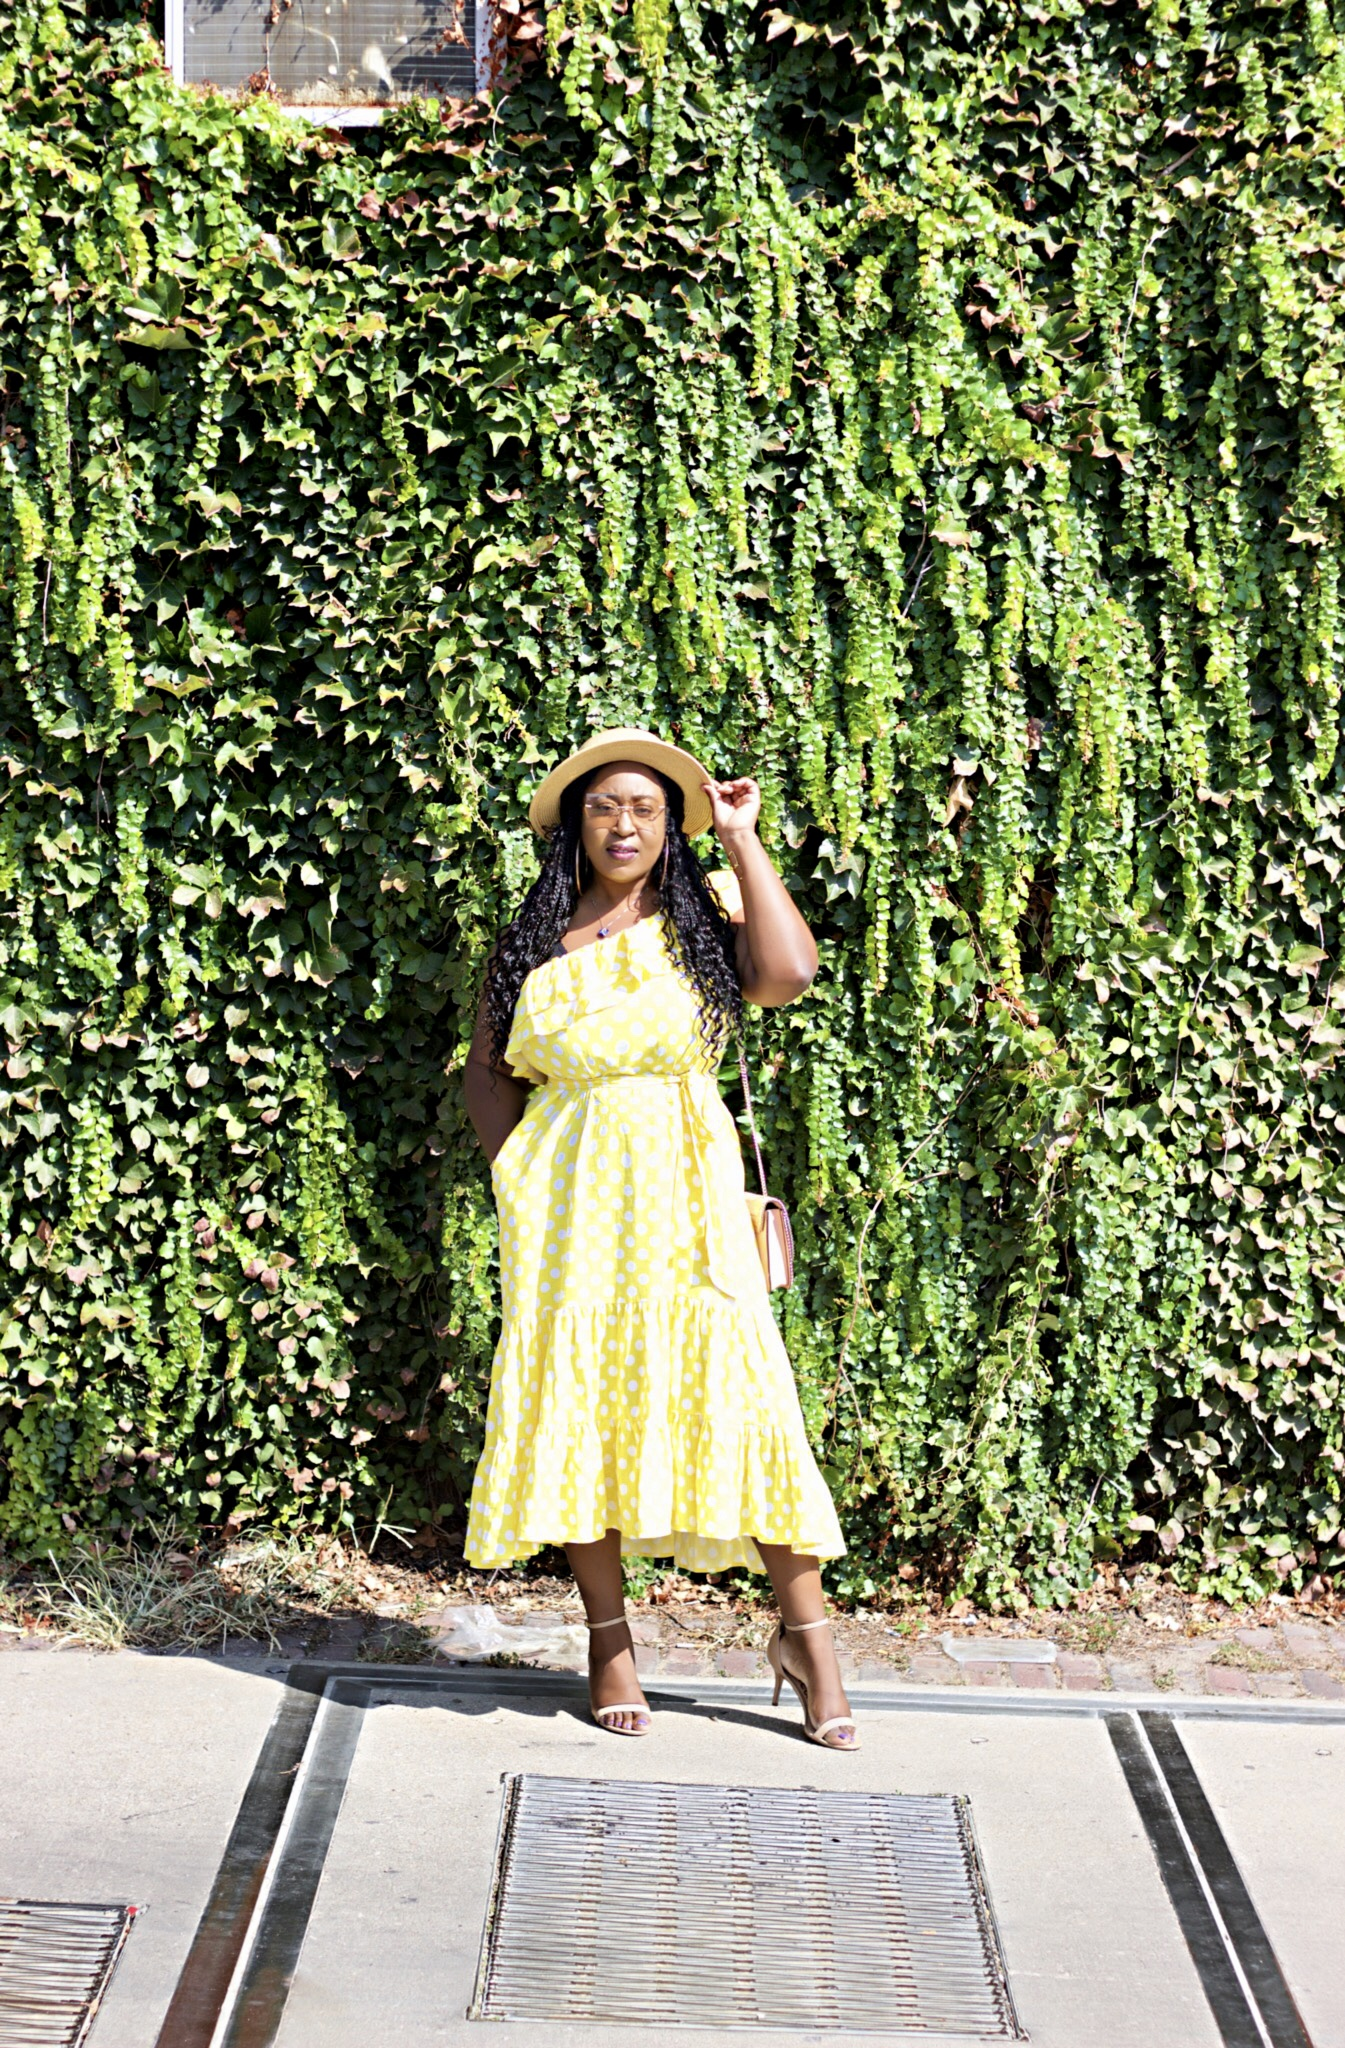 beautiful-off-the-shoulder-polka-dot-yellow-dress-hypnozglam